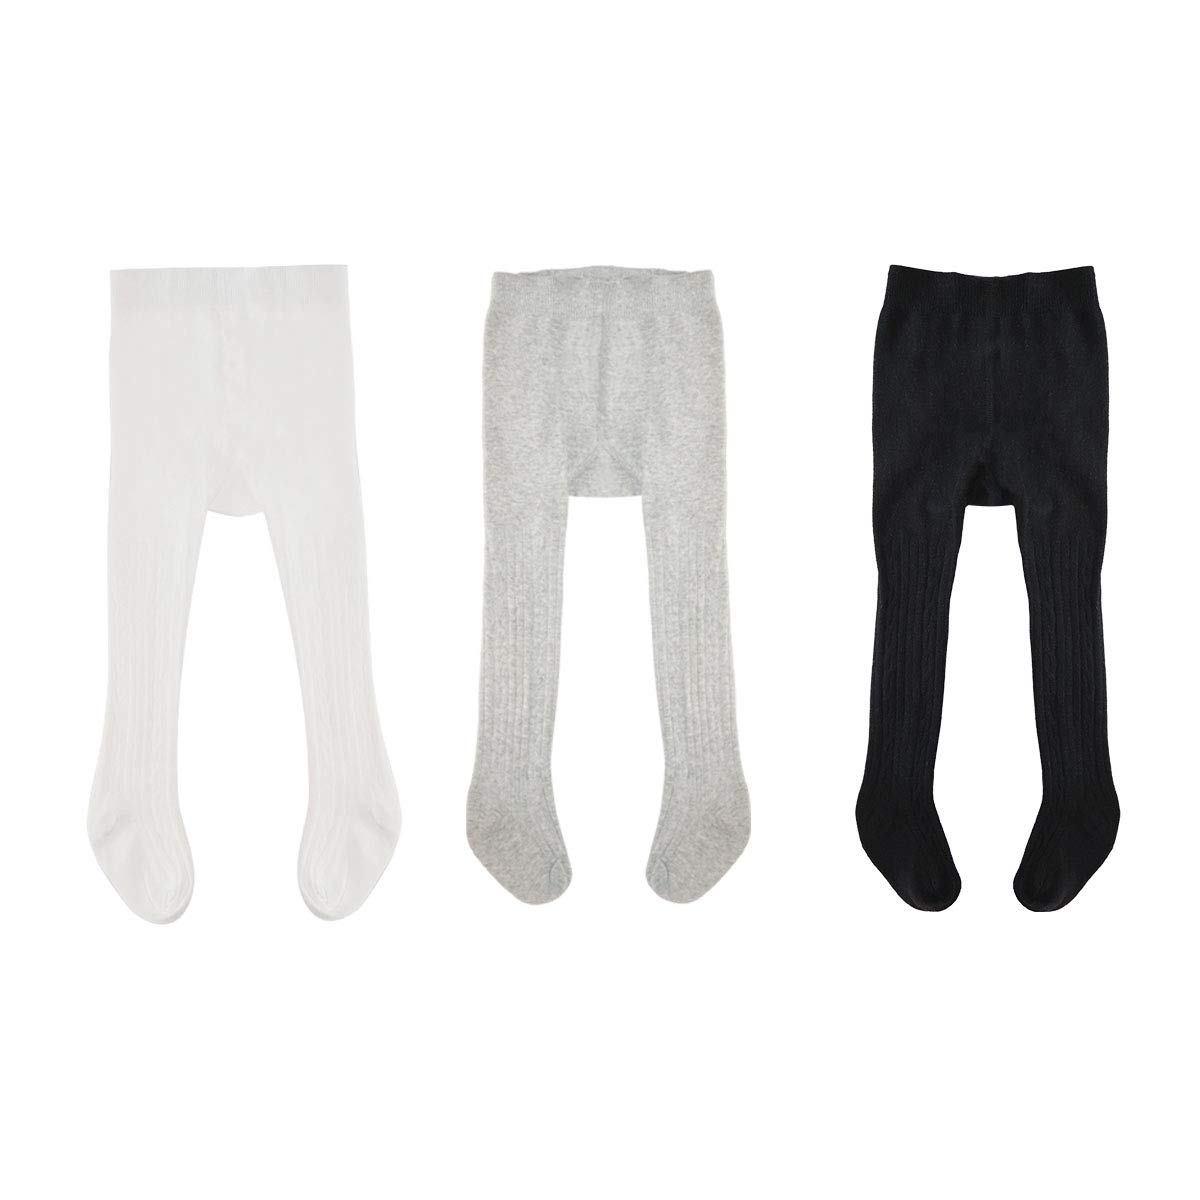 db7483328 Amazon.com  Baby Girls Boys Toddler Cable Knit Knee High Leggings Pants  Tights Panties Stockings Socks(Pack of 3-5 pairs)  Clothing